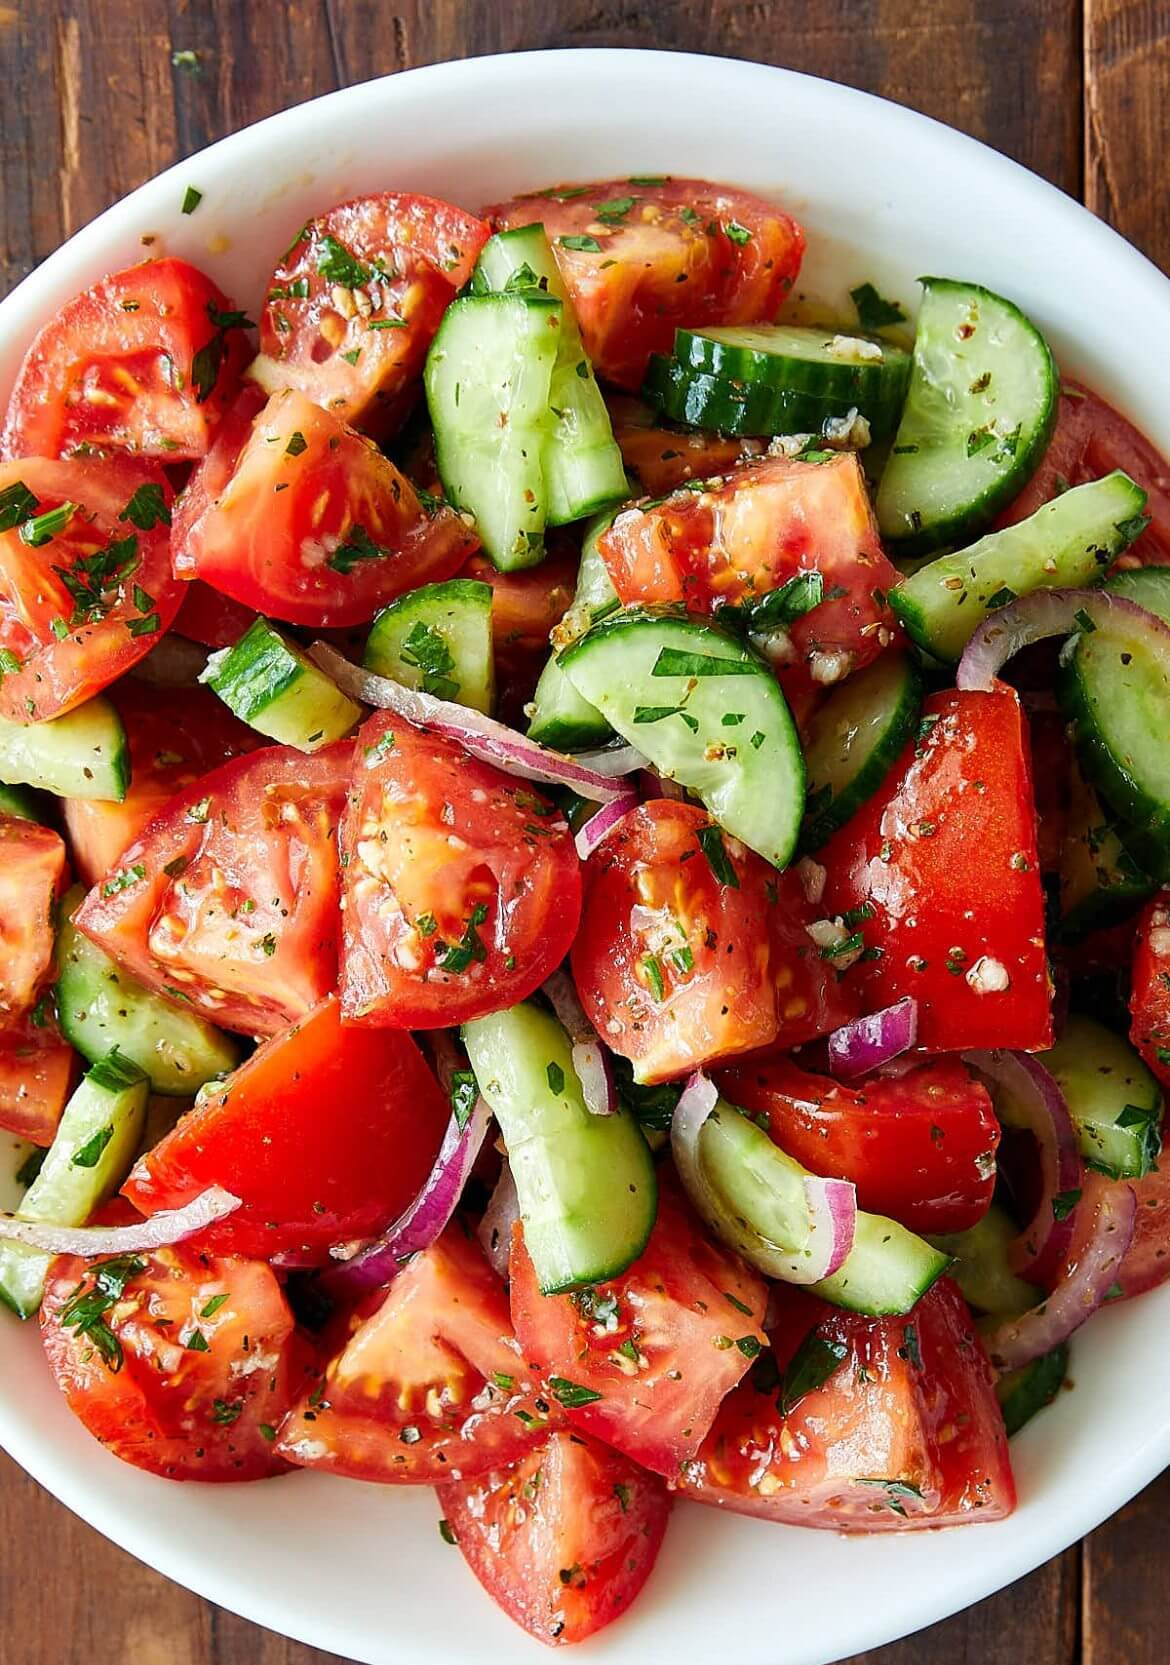 1. Rustic Cucumber and Tomato Salad